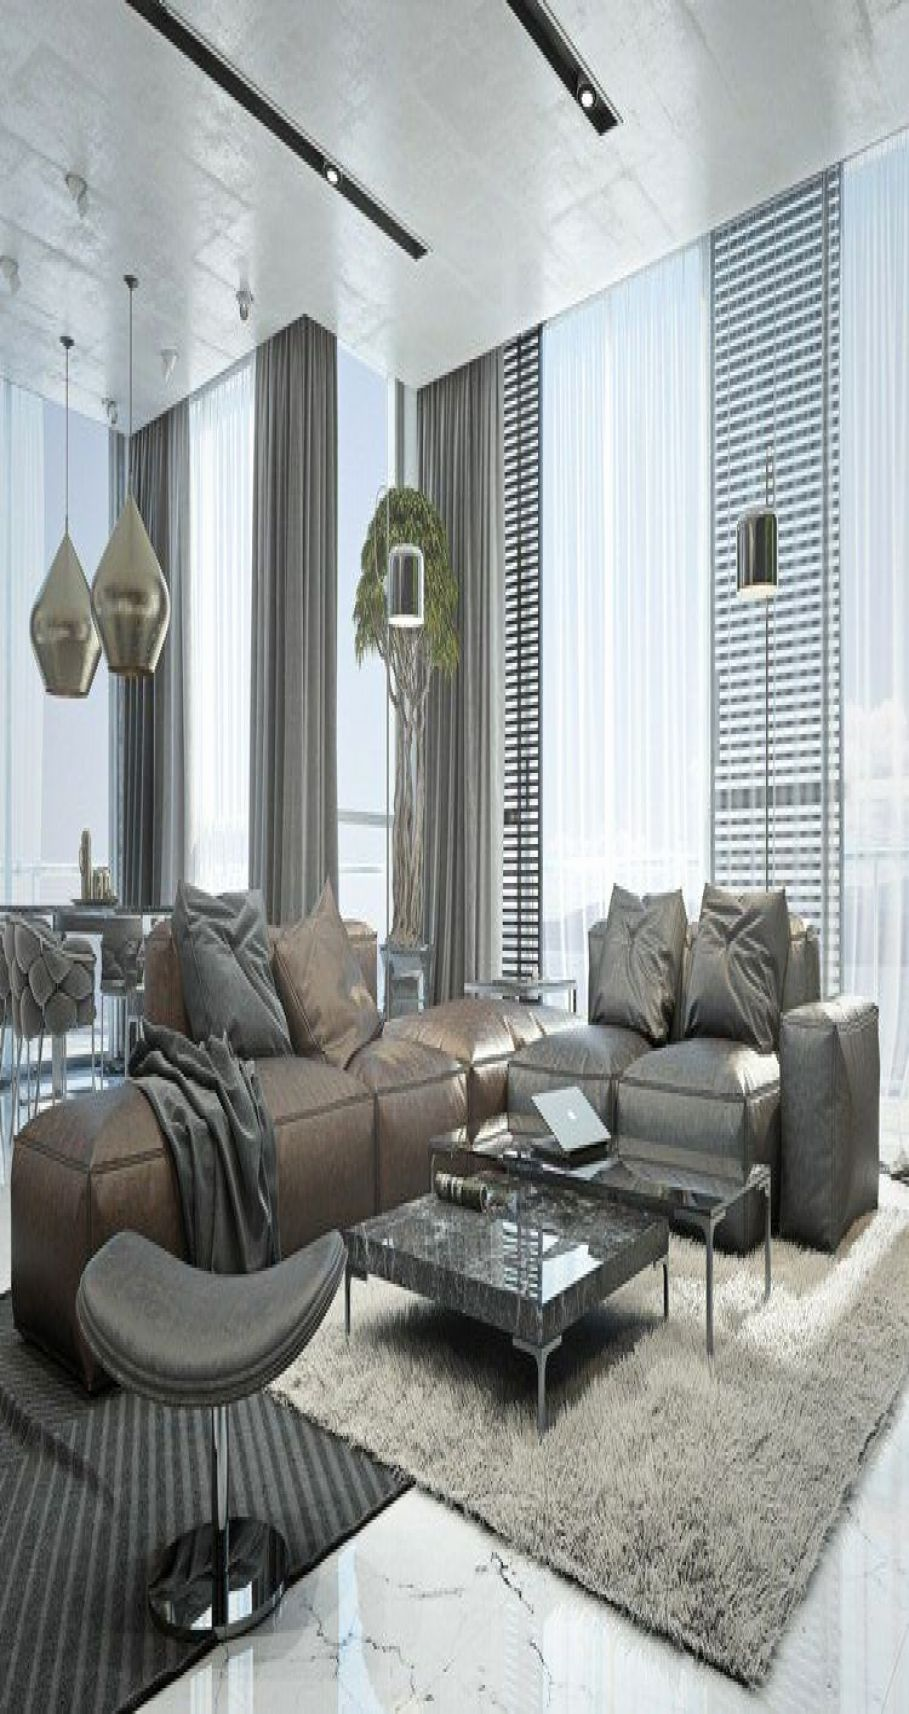 24 Das Beste Von Wohnzimmer Grau Braun | Elegant living room, Contemporary living room design, Stylish living room